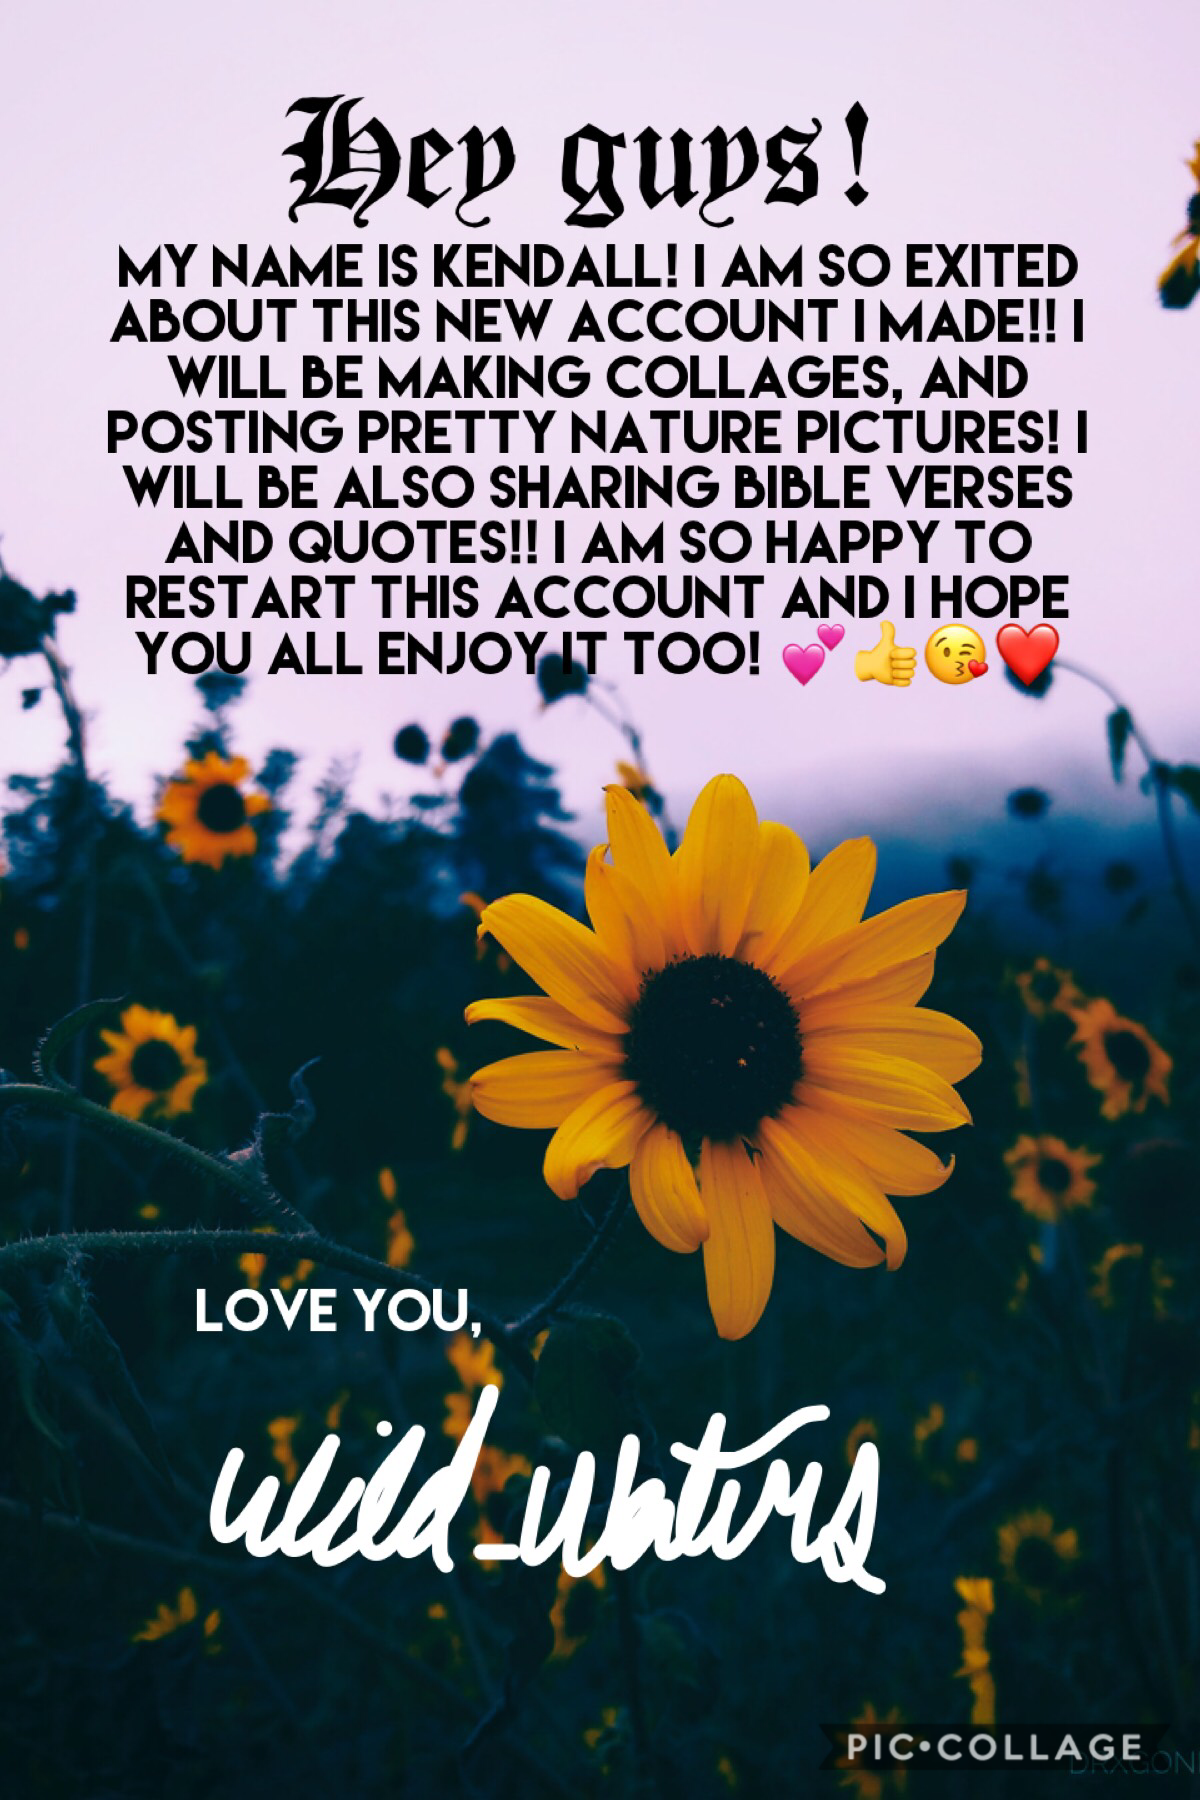 TAPPP FOR MORE INFO!!  Love you so much! And I hope to meet u all! Don't forget to comment so we can chat!!!! 💕💕💕 ttyl! Much love!! #Wild_Waters